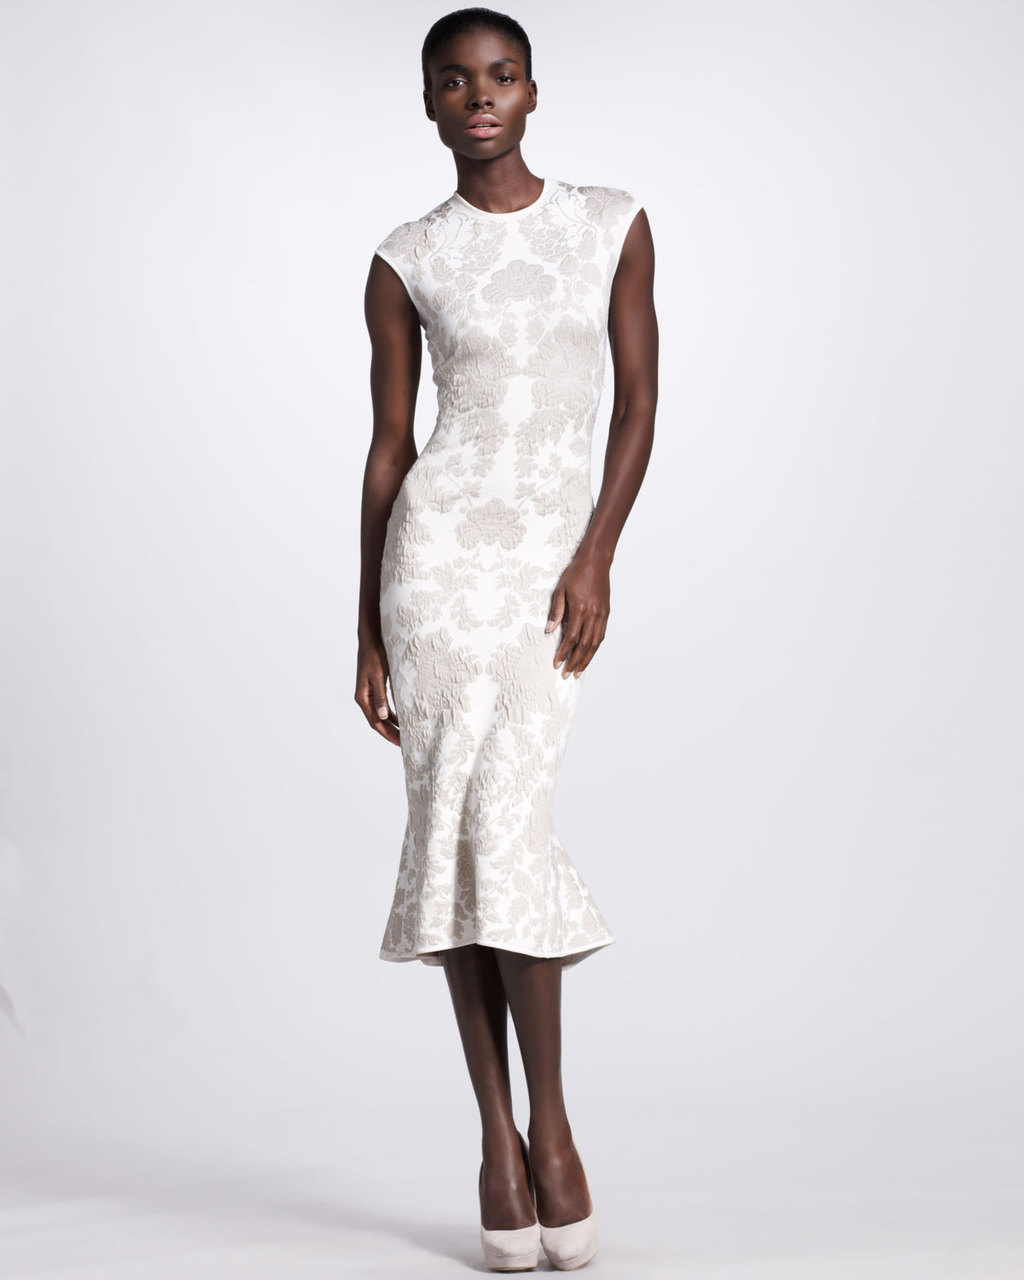 Wedding-splurge-top-10-for-fall-2012-alexander-mcqueen-reception-dress.full